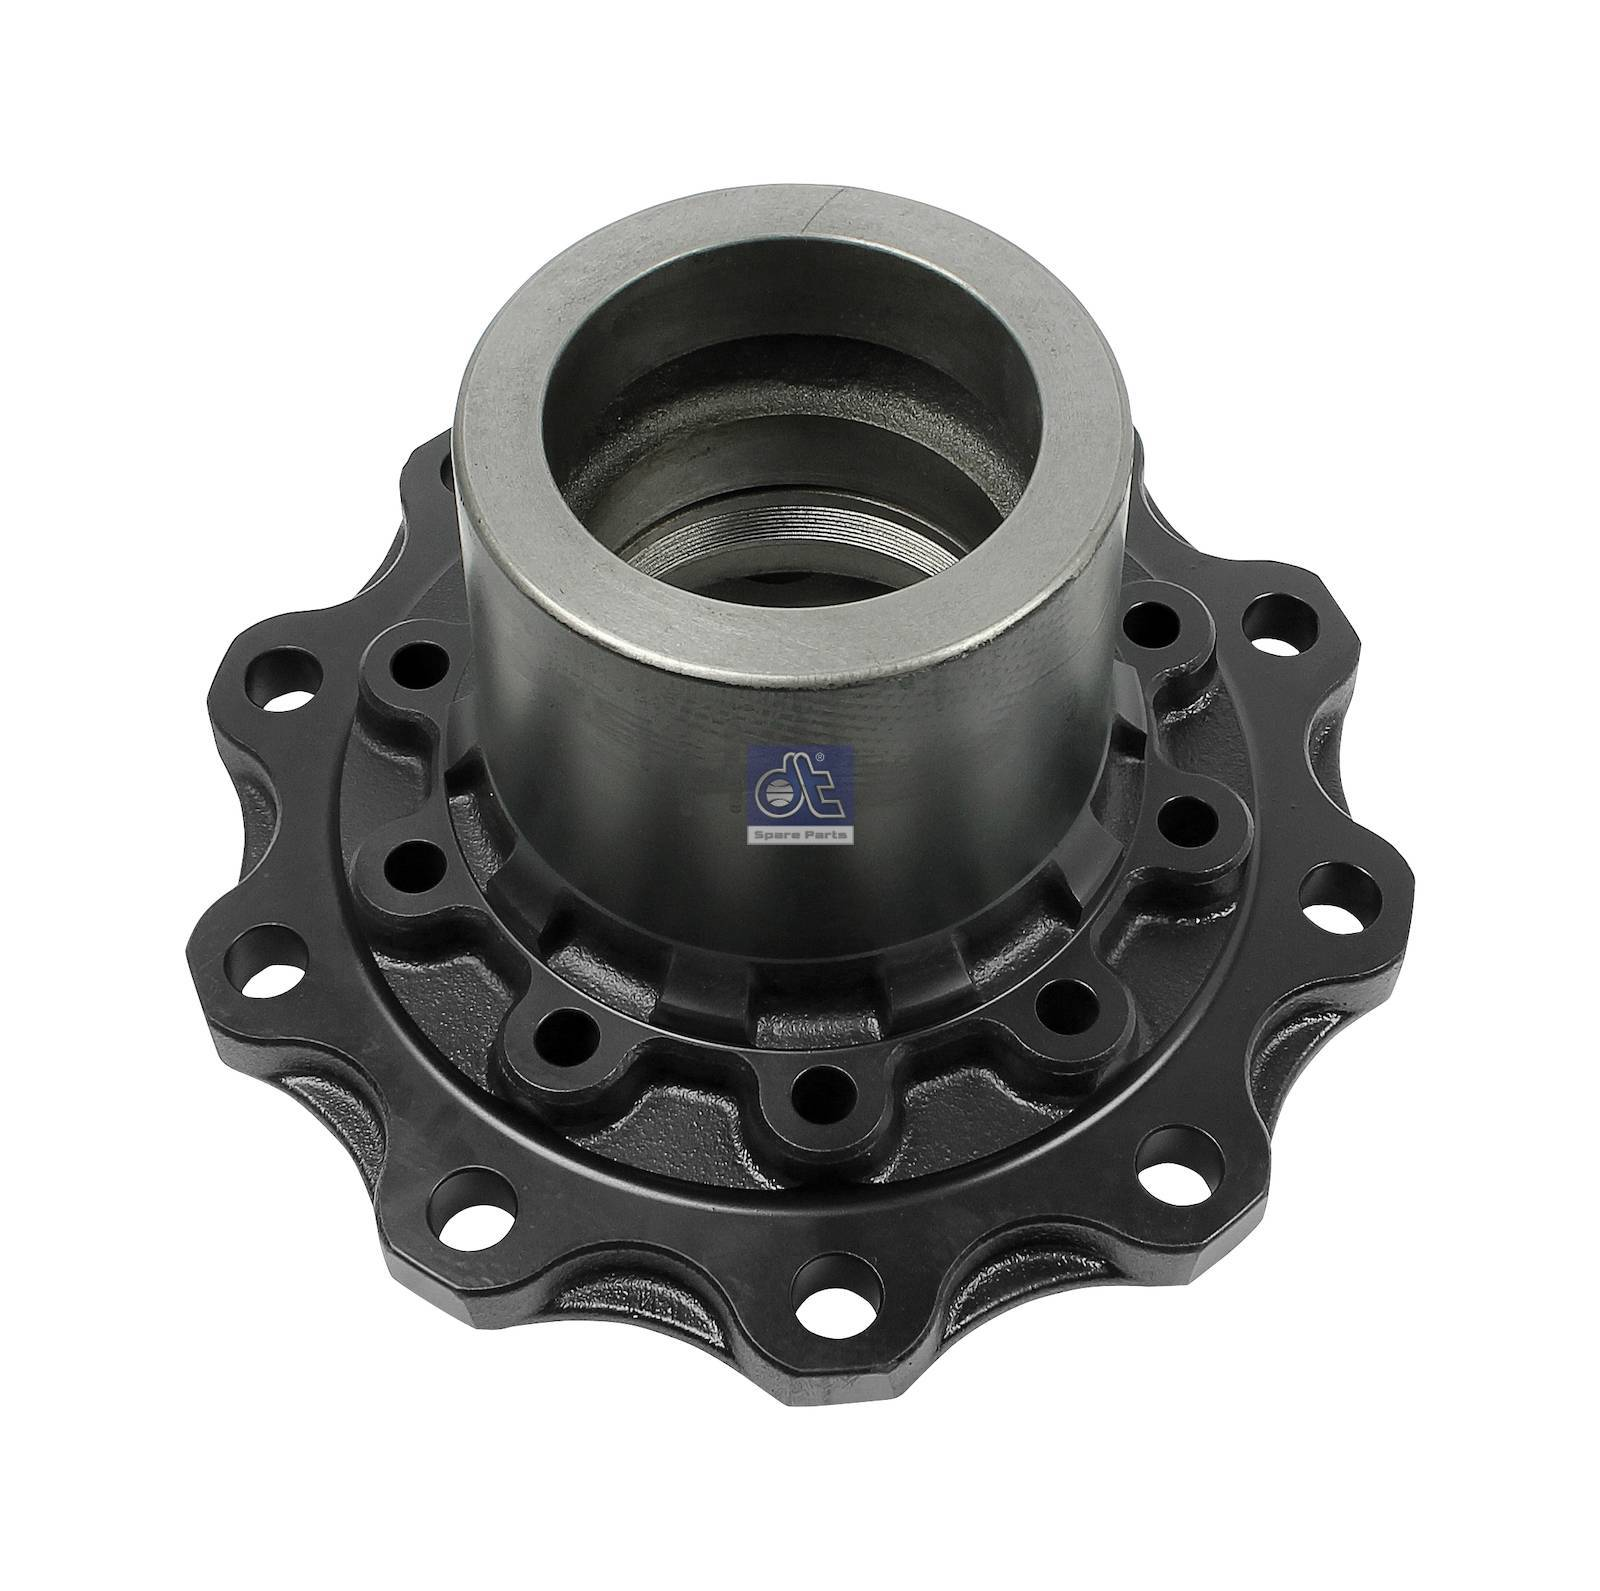 Wheel hub, without bearings